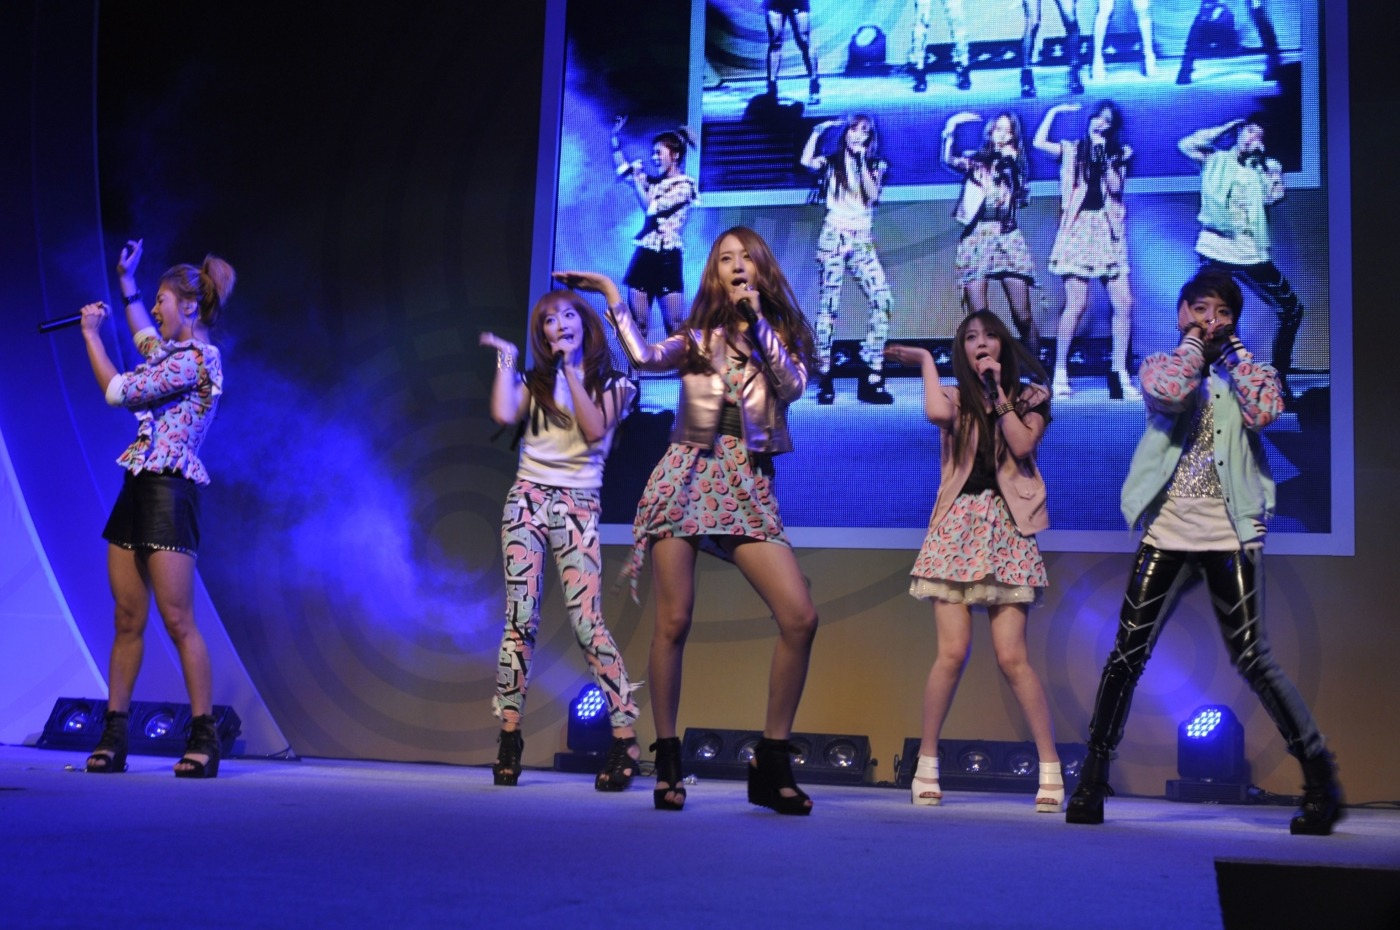 f(x) band on stage, blue lit stage, high energy performance